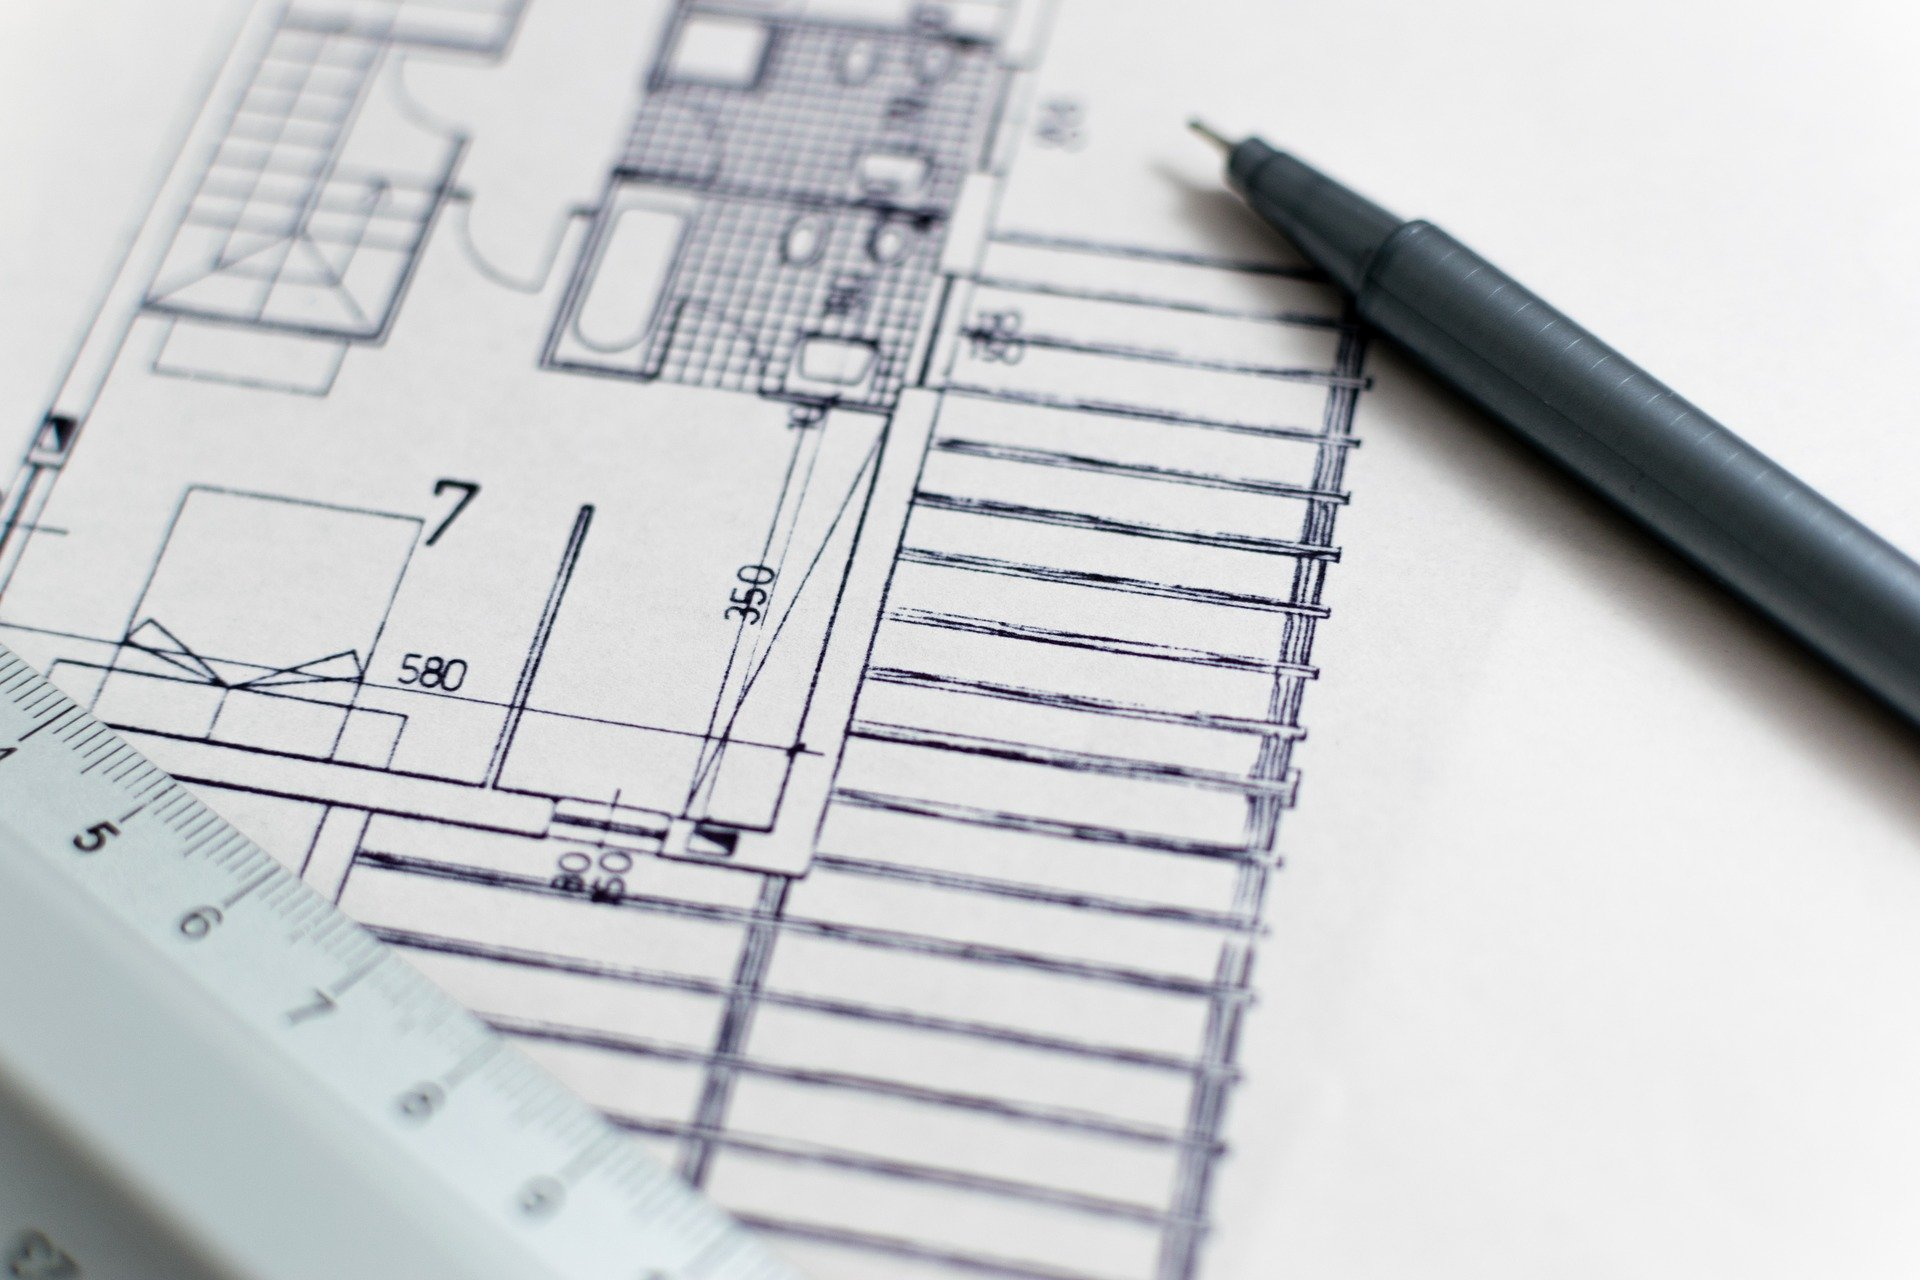 Update On The Proposed Design And Building Practitioners Bill